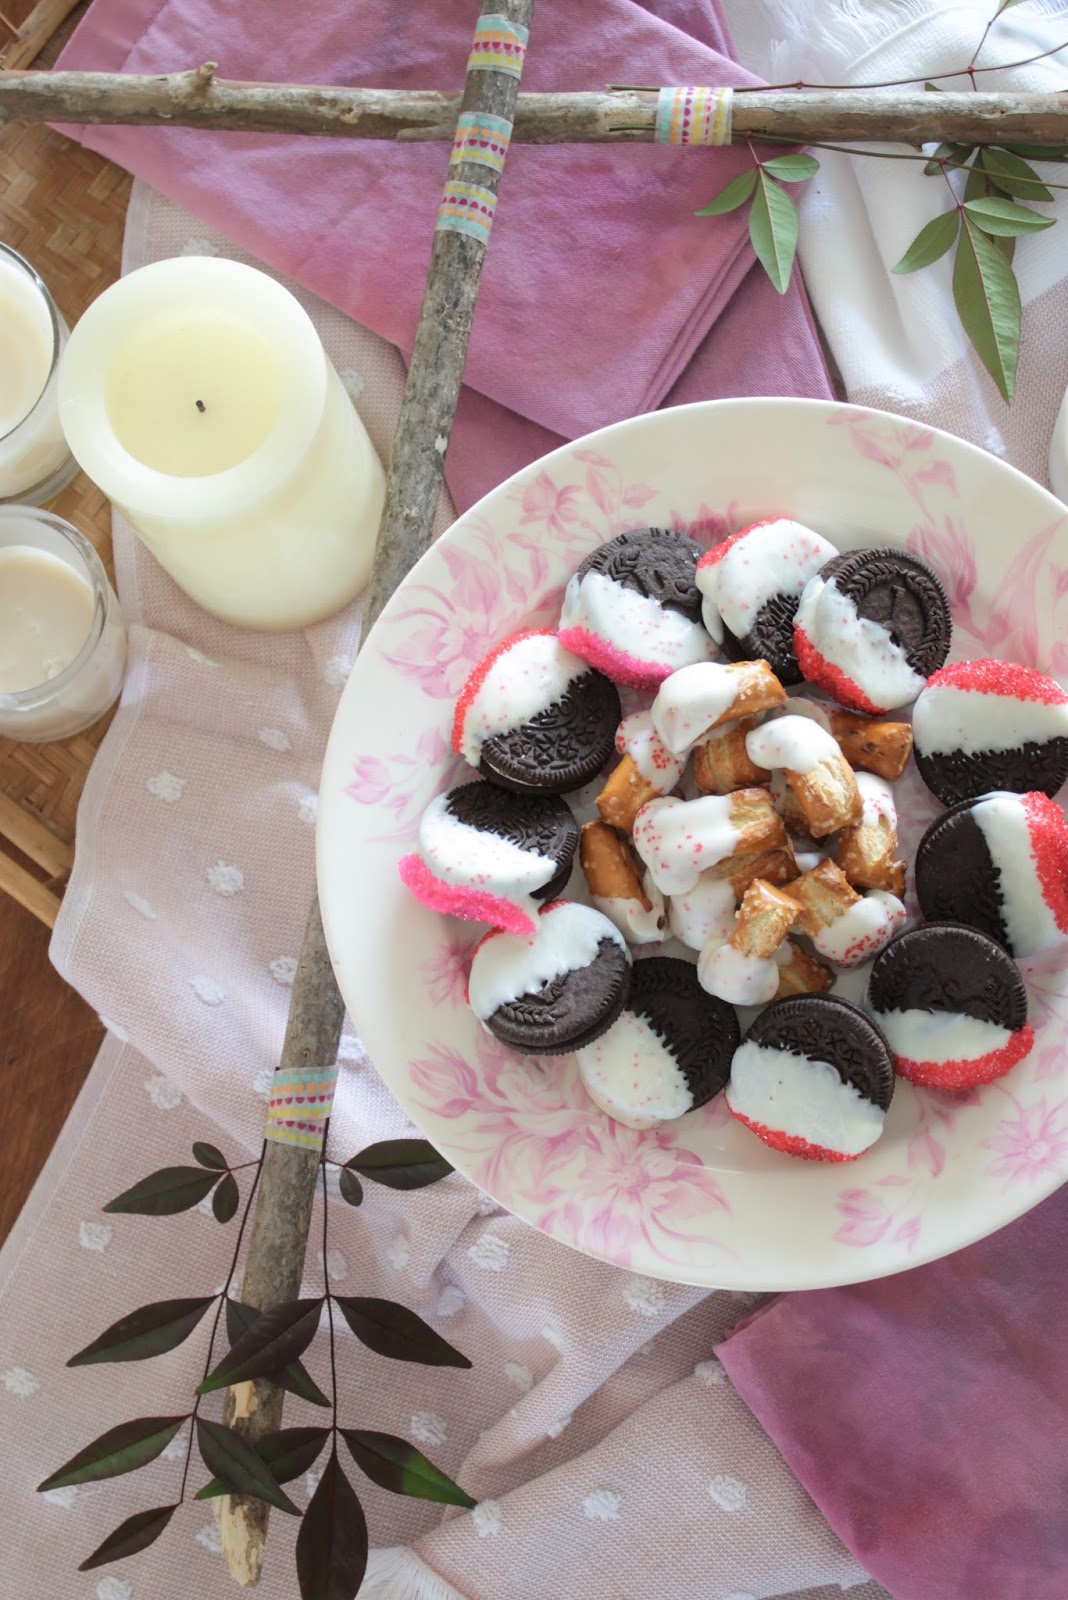 The Global Styler: Valentine's treats and tablescapes